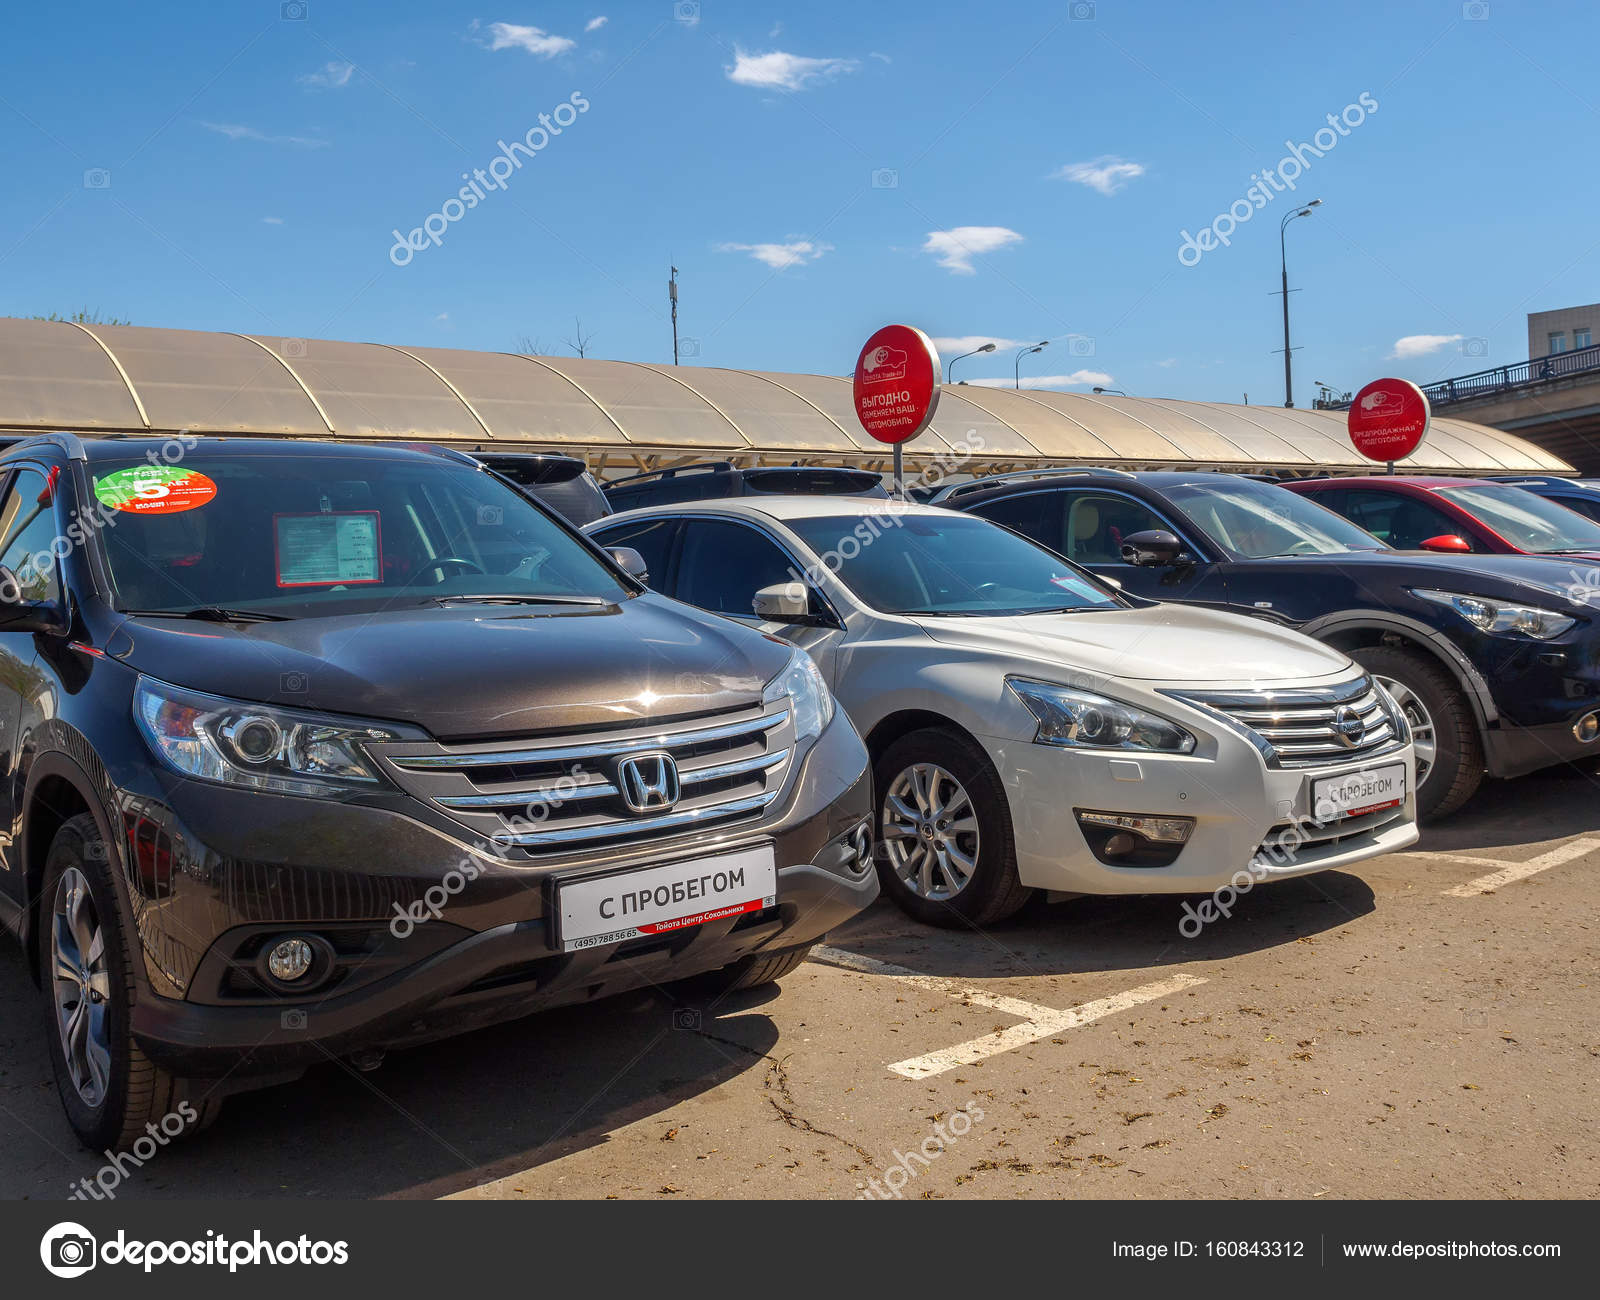 used car parking for sale trade in cars russia moscow may 2017 — photo by asobov